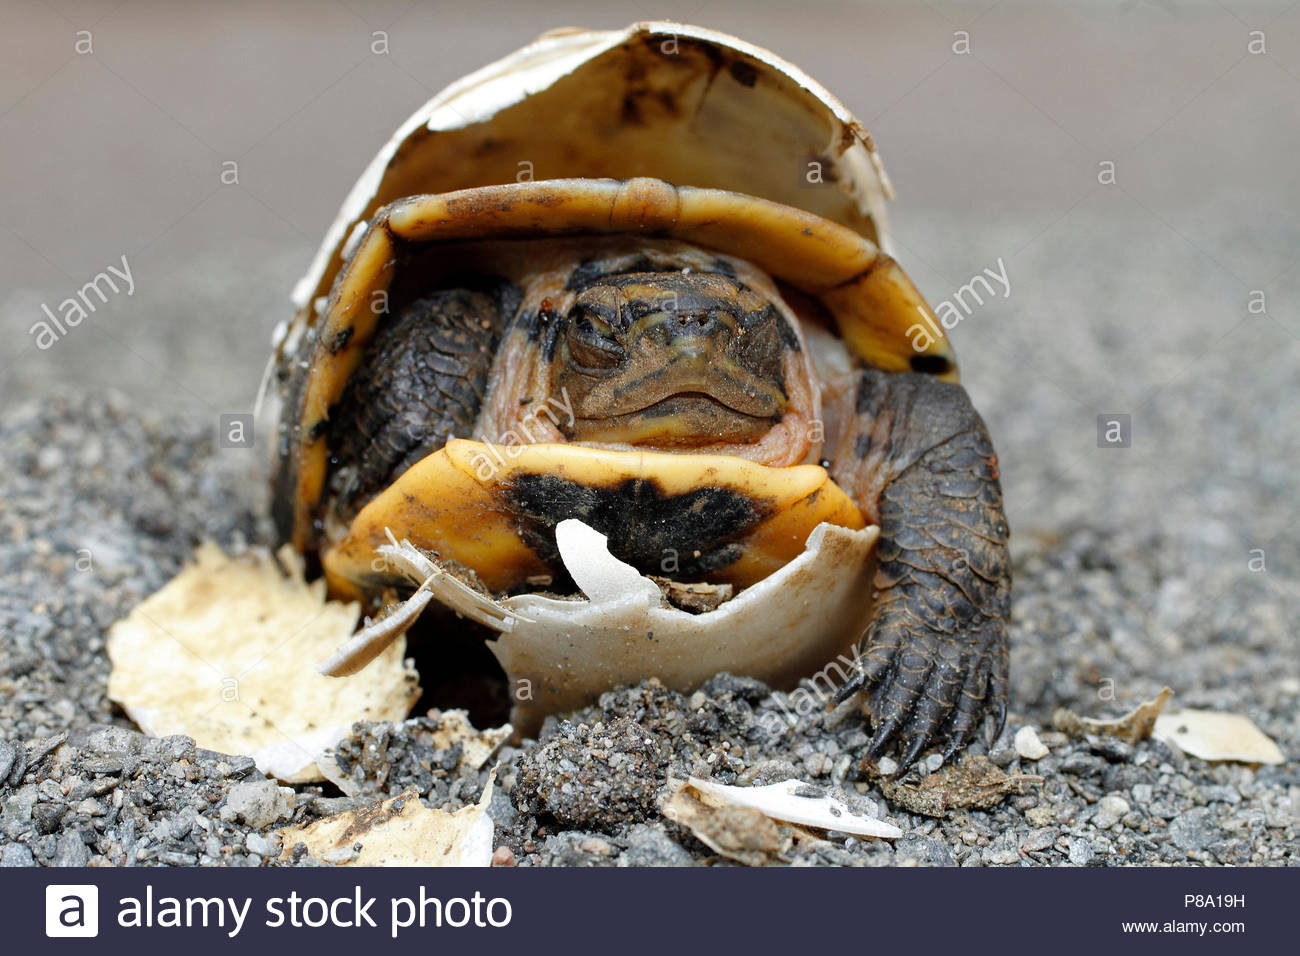 Green turtle (Chelonia mydas), hatches from egg, closed eyes, Puerto Galera, Mindoro, Philippines - Stock Image